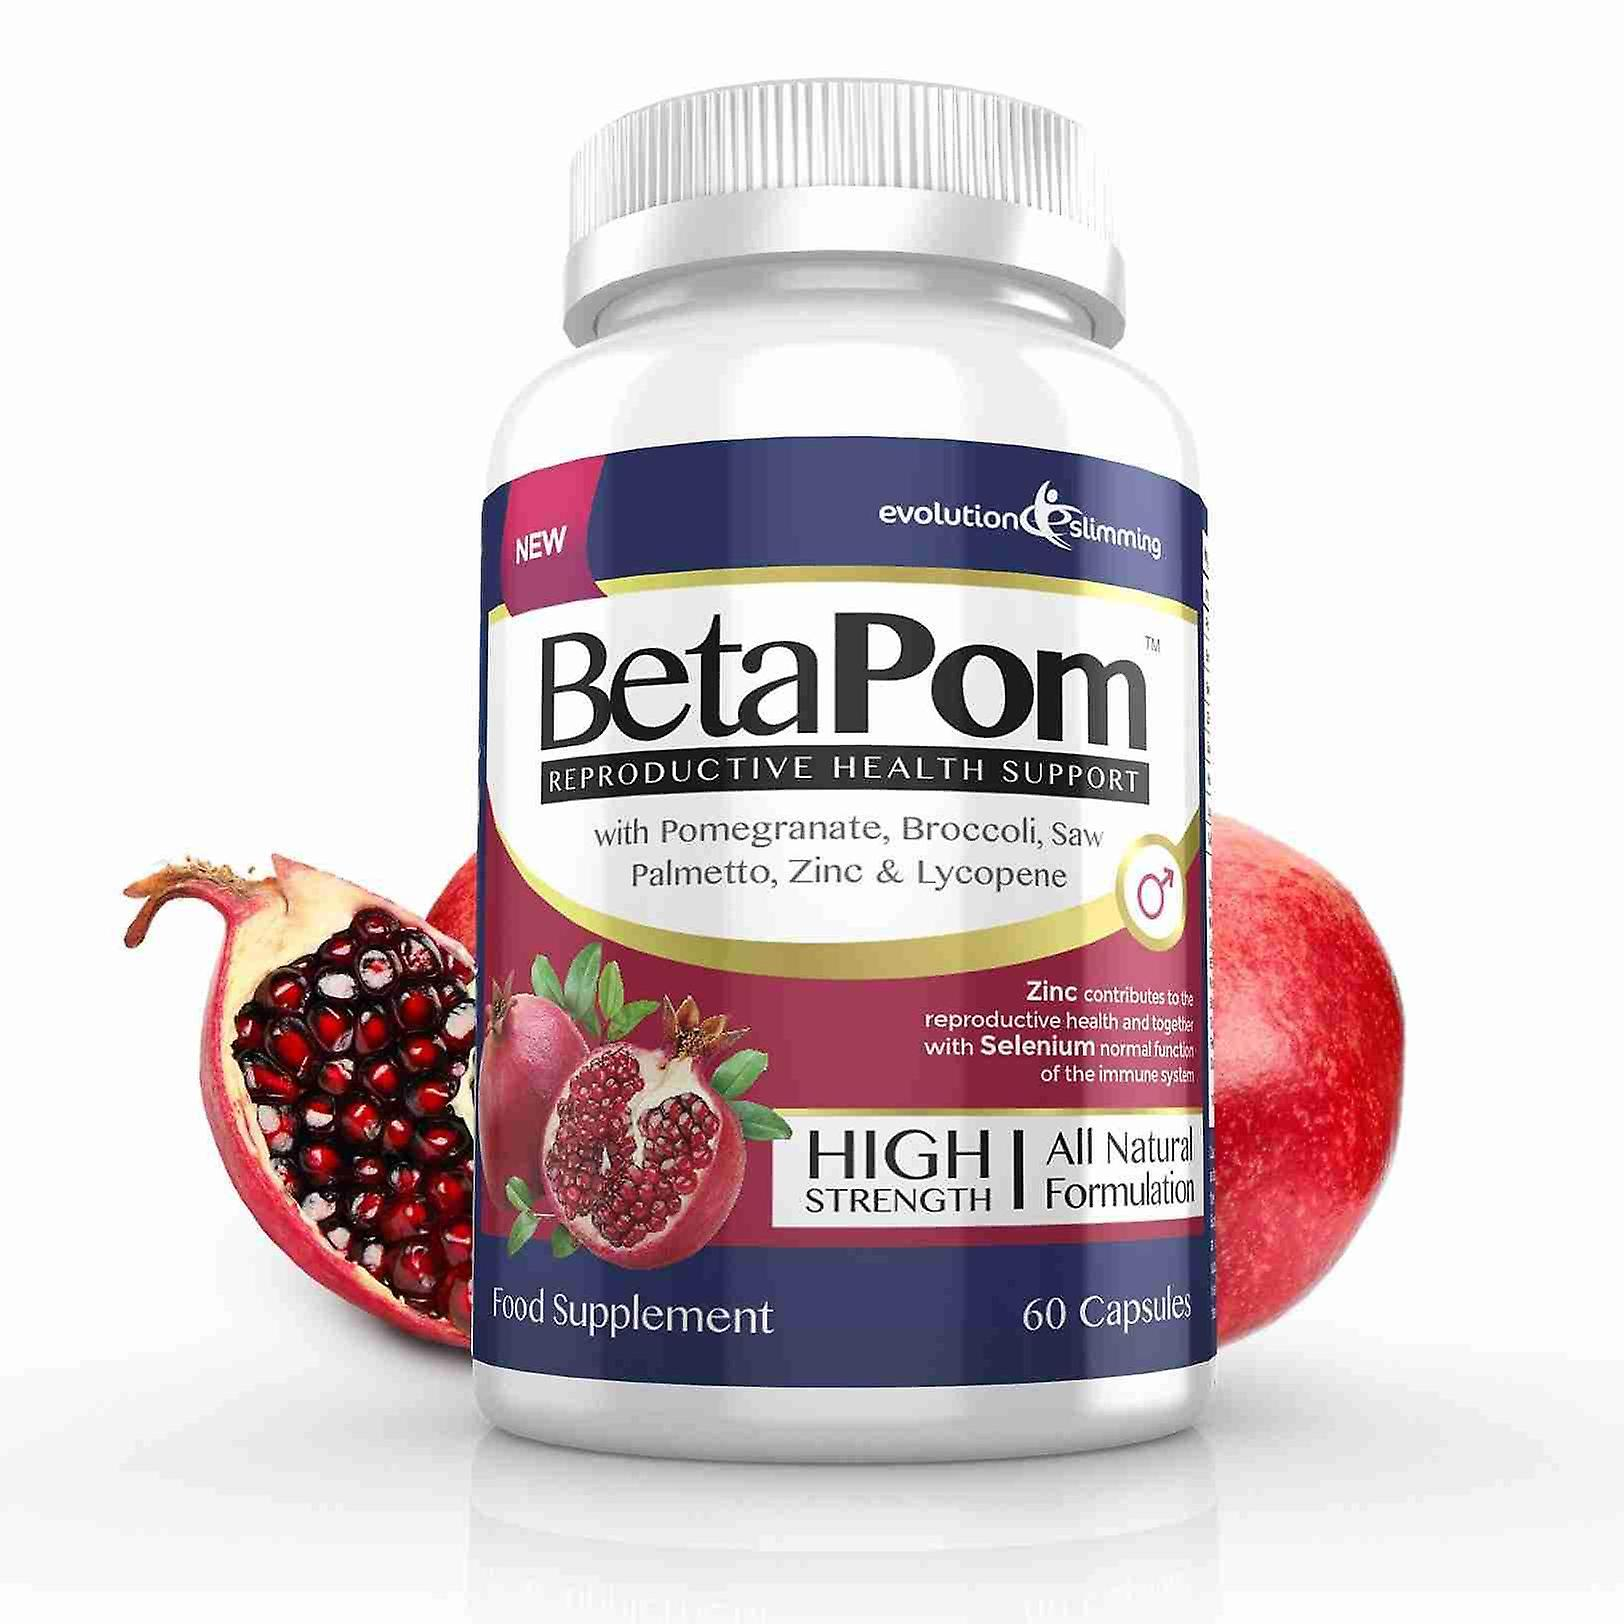 BetaPom Pomegranate Reproductive Health Support - 60 Capsules - Men's Health - Evolution Slimming